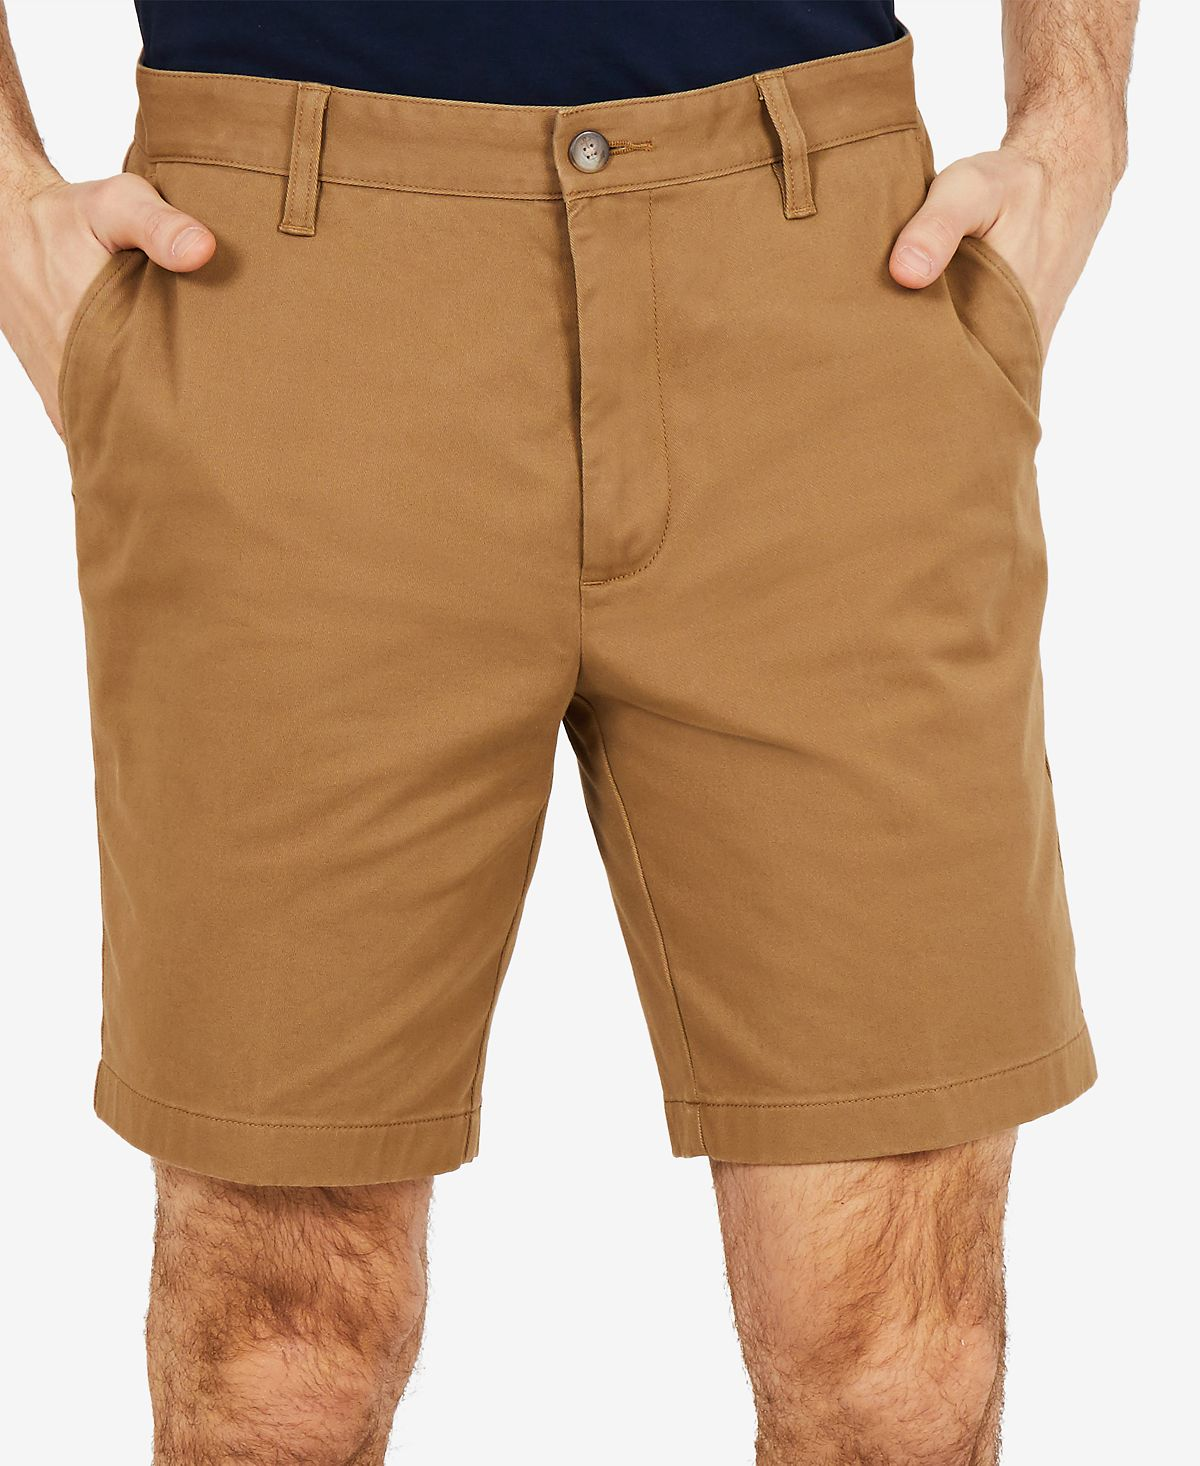 "Nautica 8.5"" Stretch Classic-fit Deck Shorts Oyster Brown"